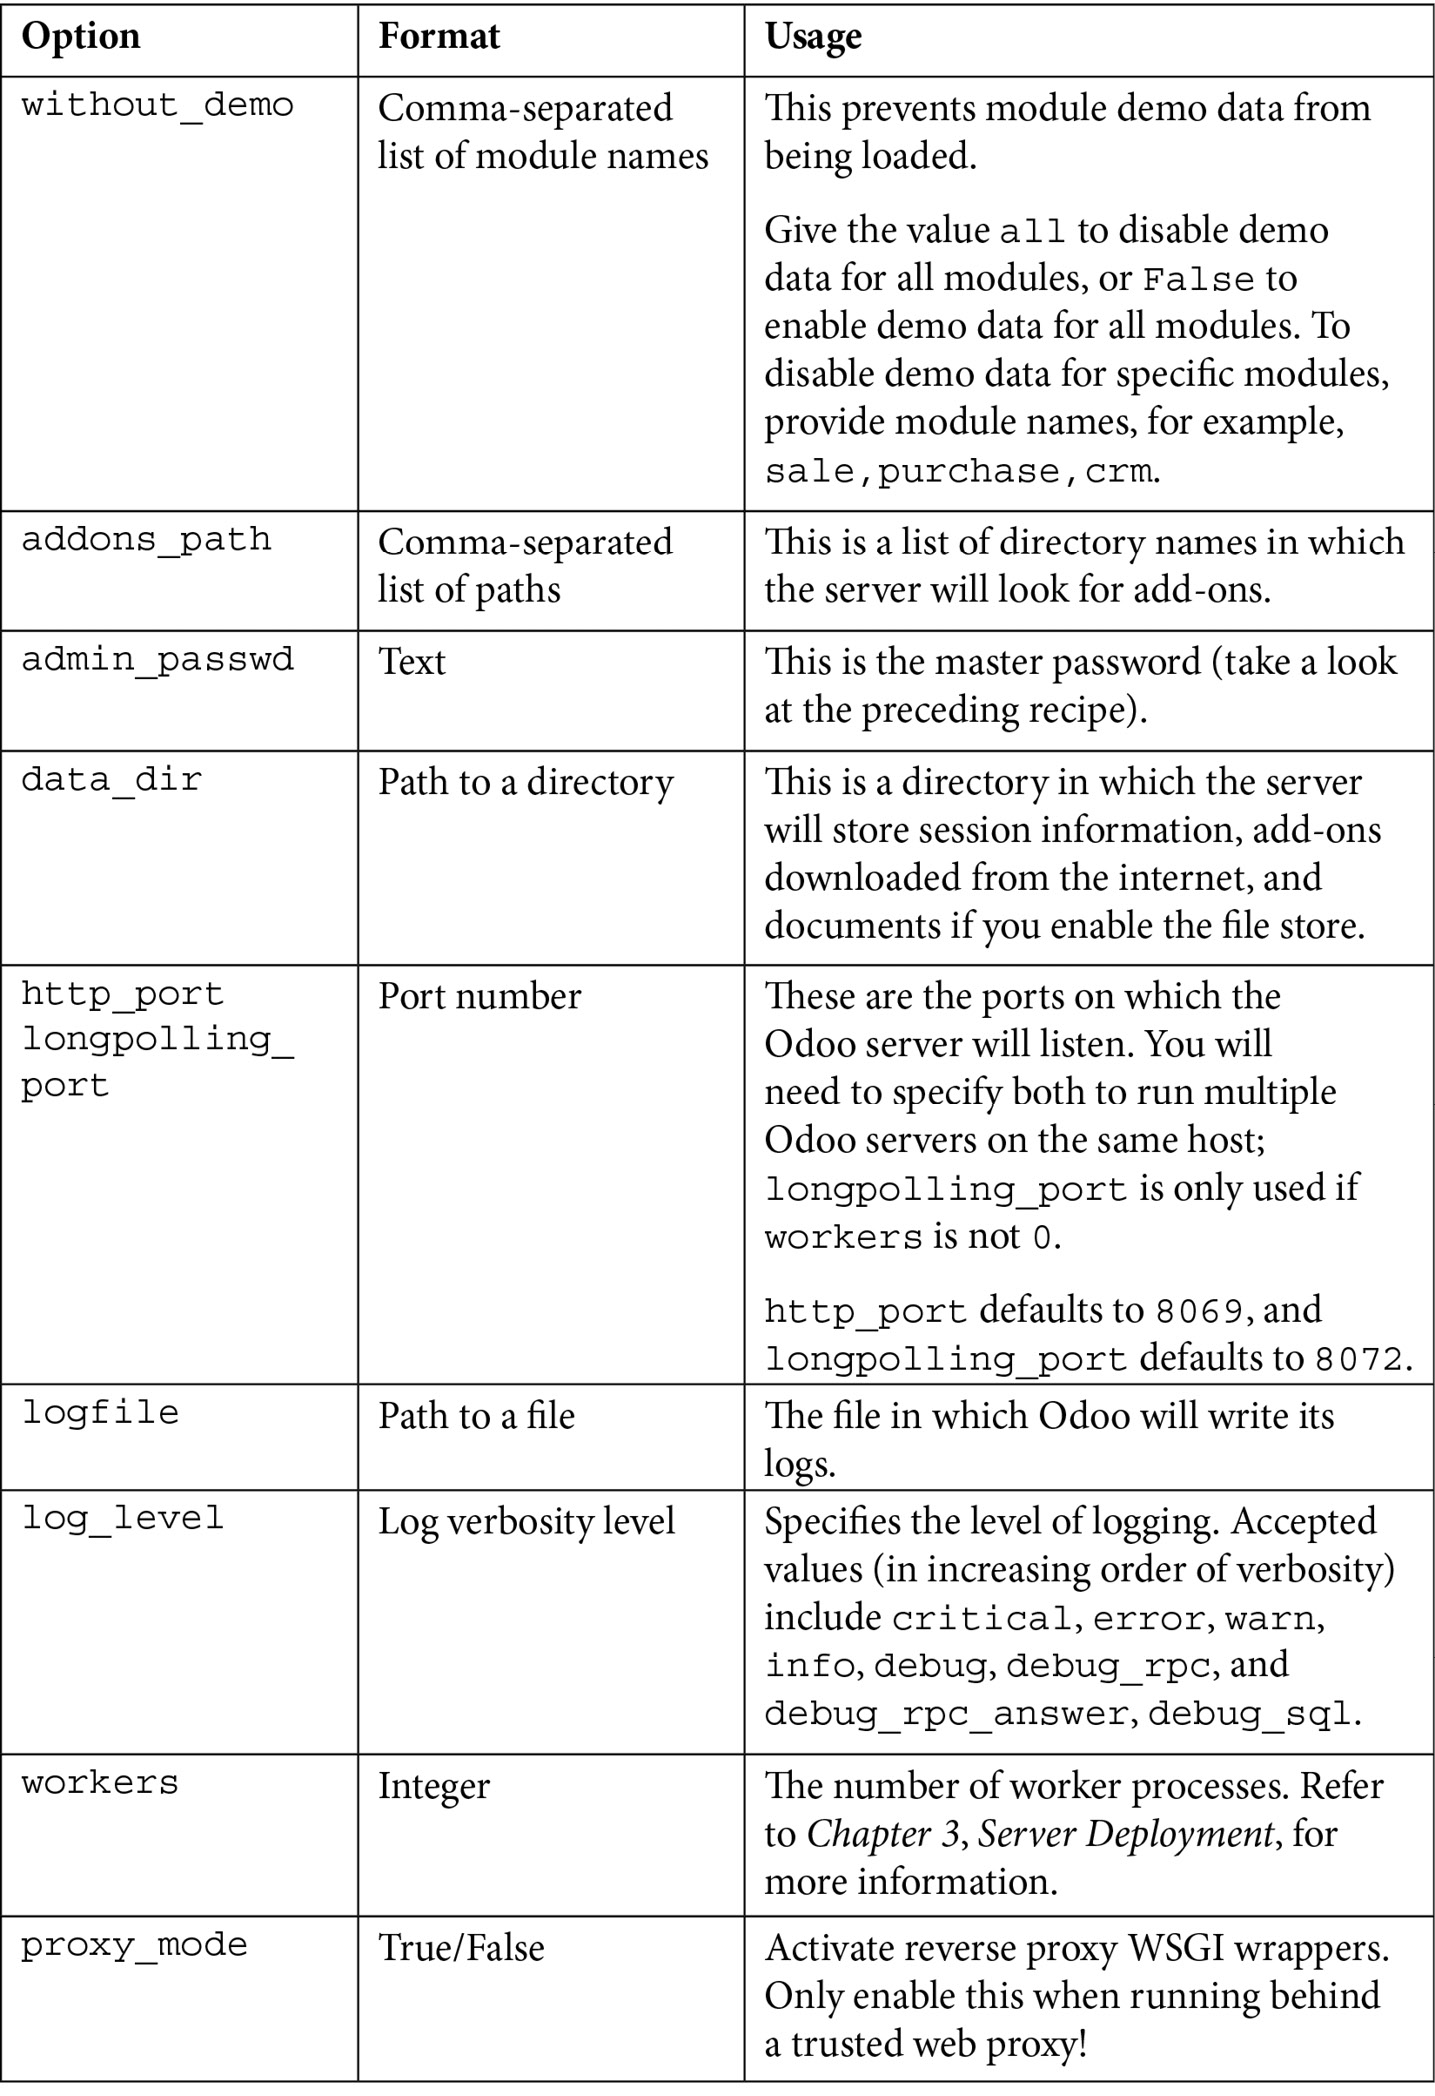 Table 1.3